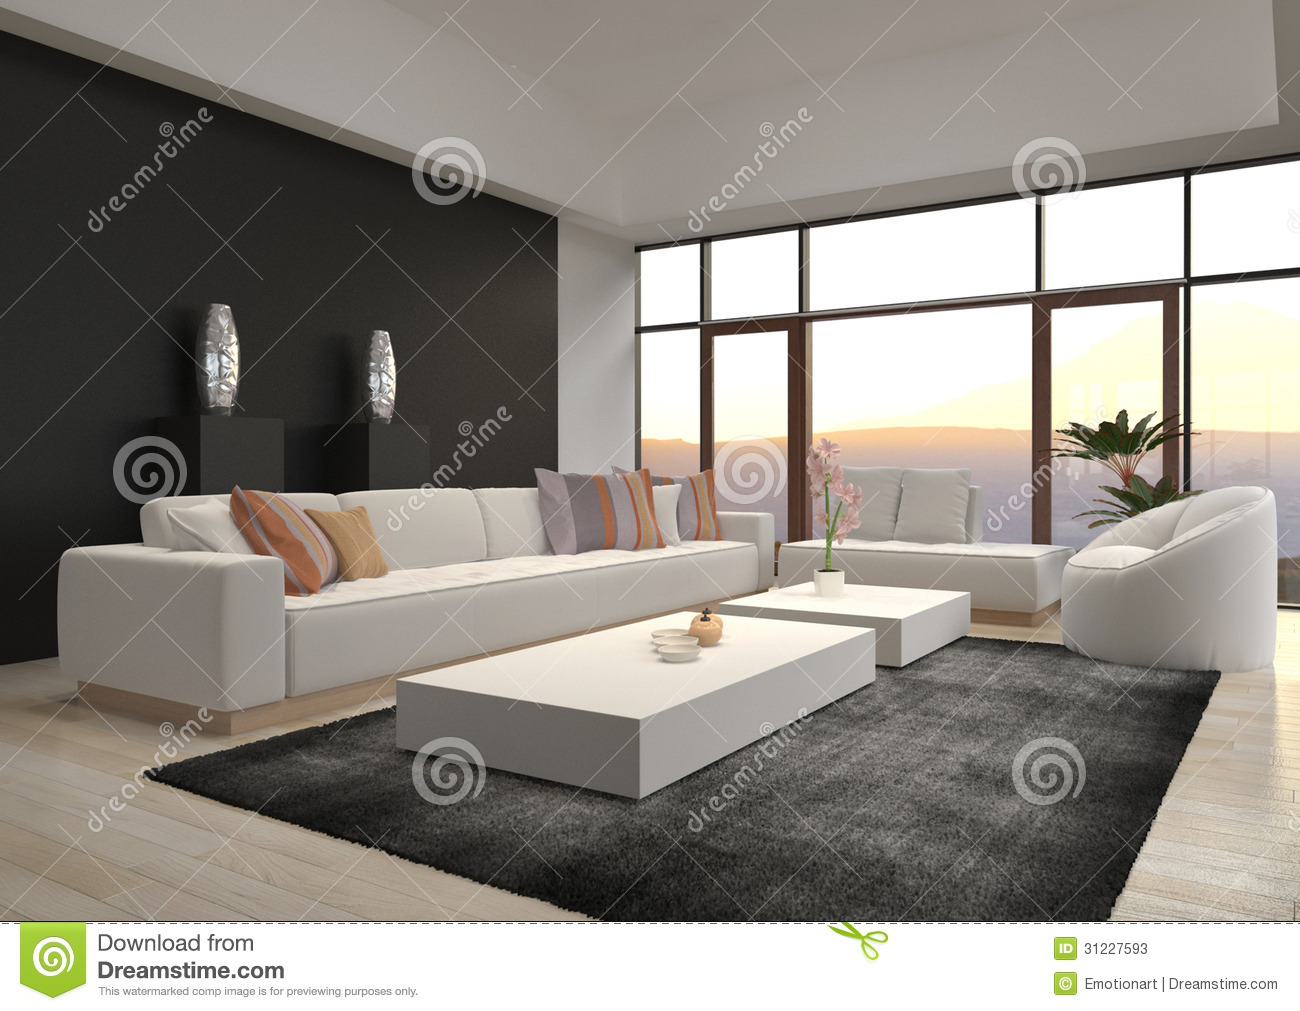 Villa Moderne 3d To Download Villa Moderne 3d Just Right Click And  #82A328 1300 1011 Progettare Cucina 3d Online Gratis Italiano